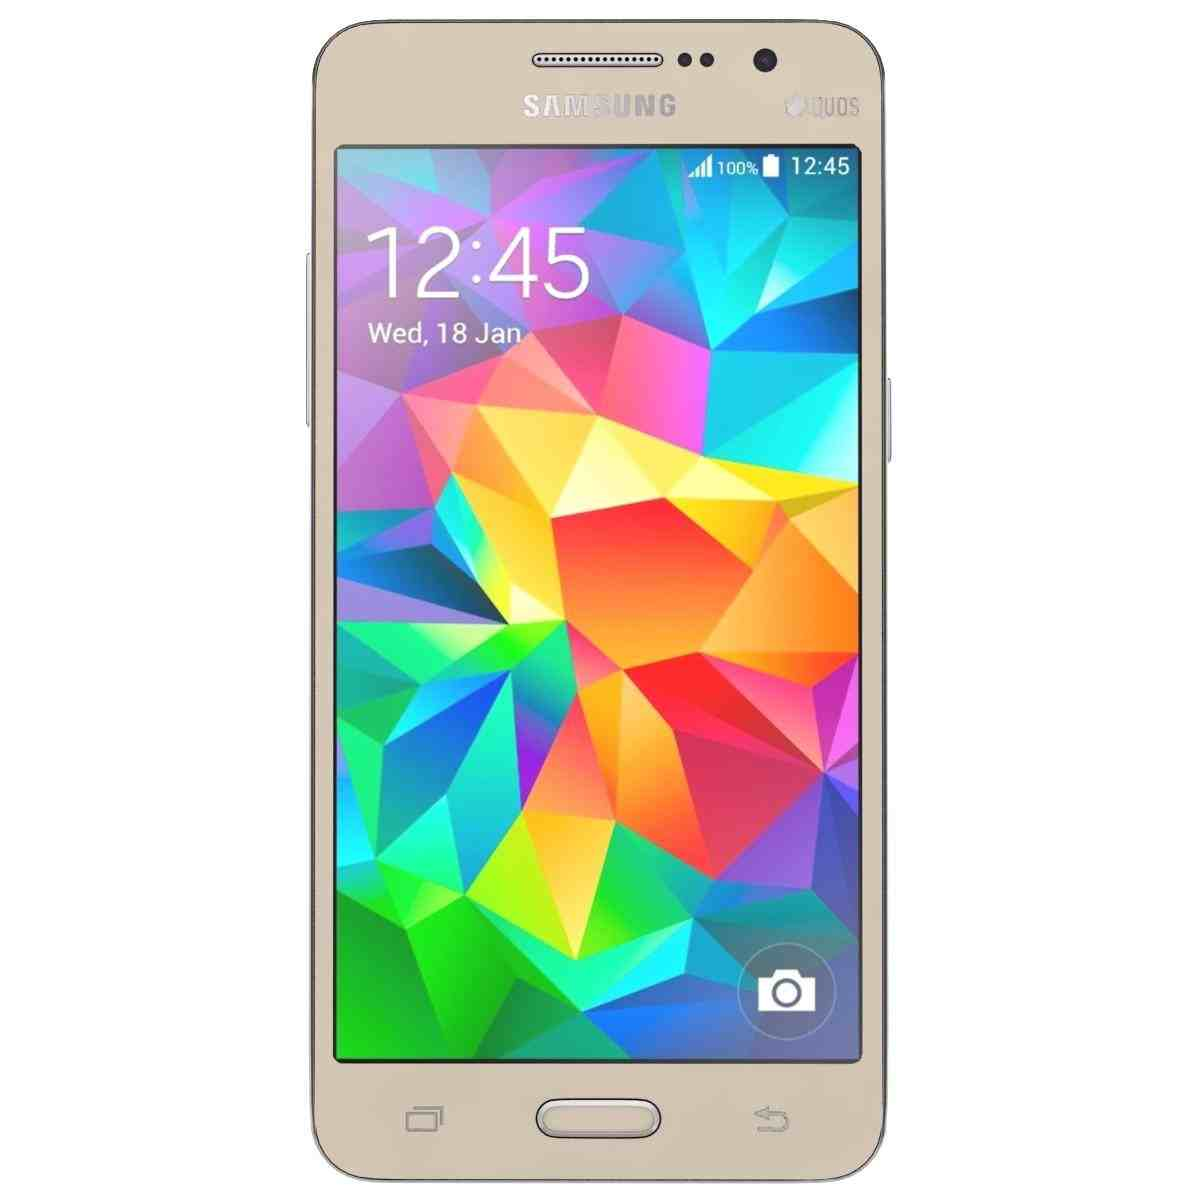 Update firmware Samsung Galaxy Grand Prime (T-Mobile) (SM-G530T1